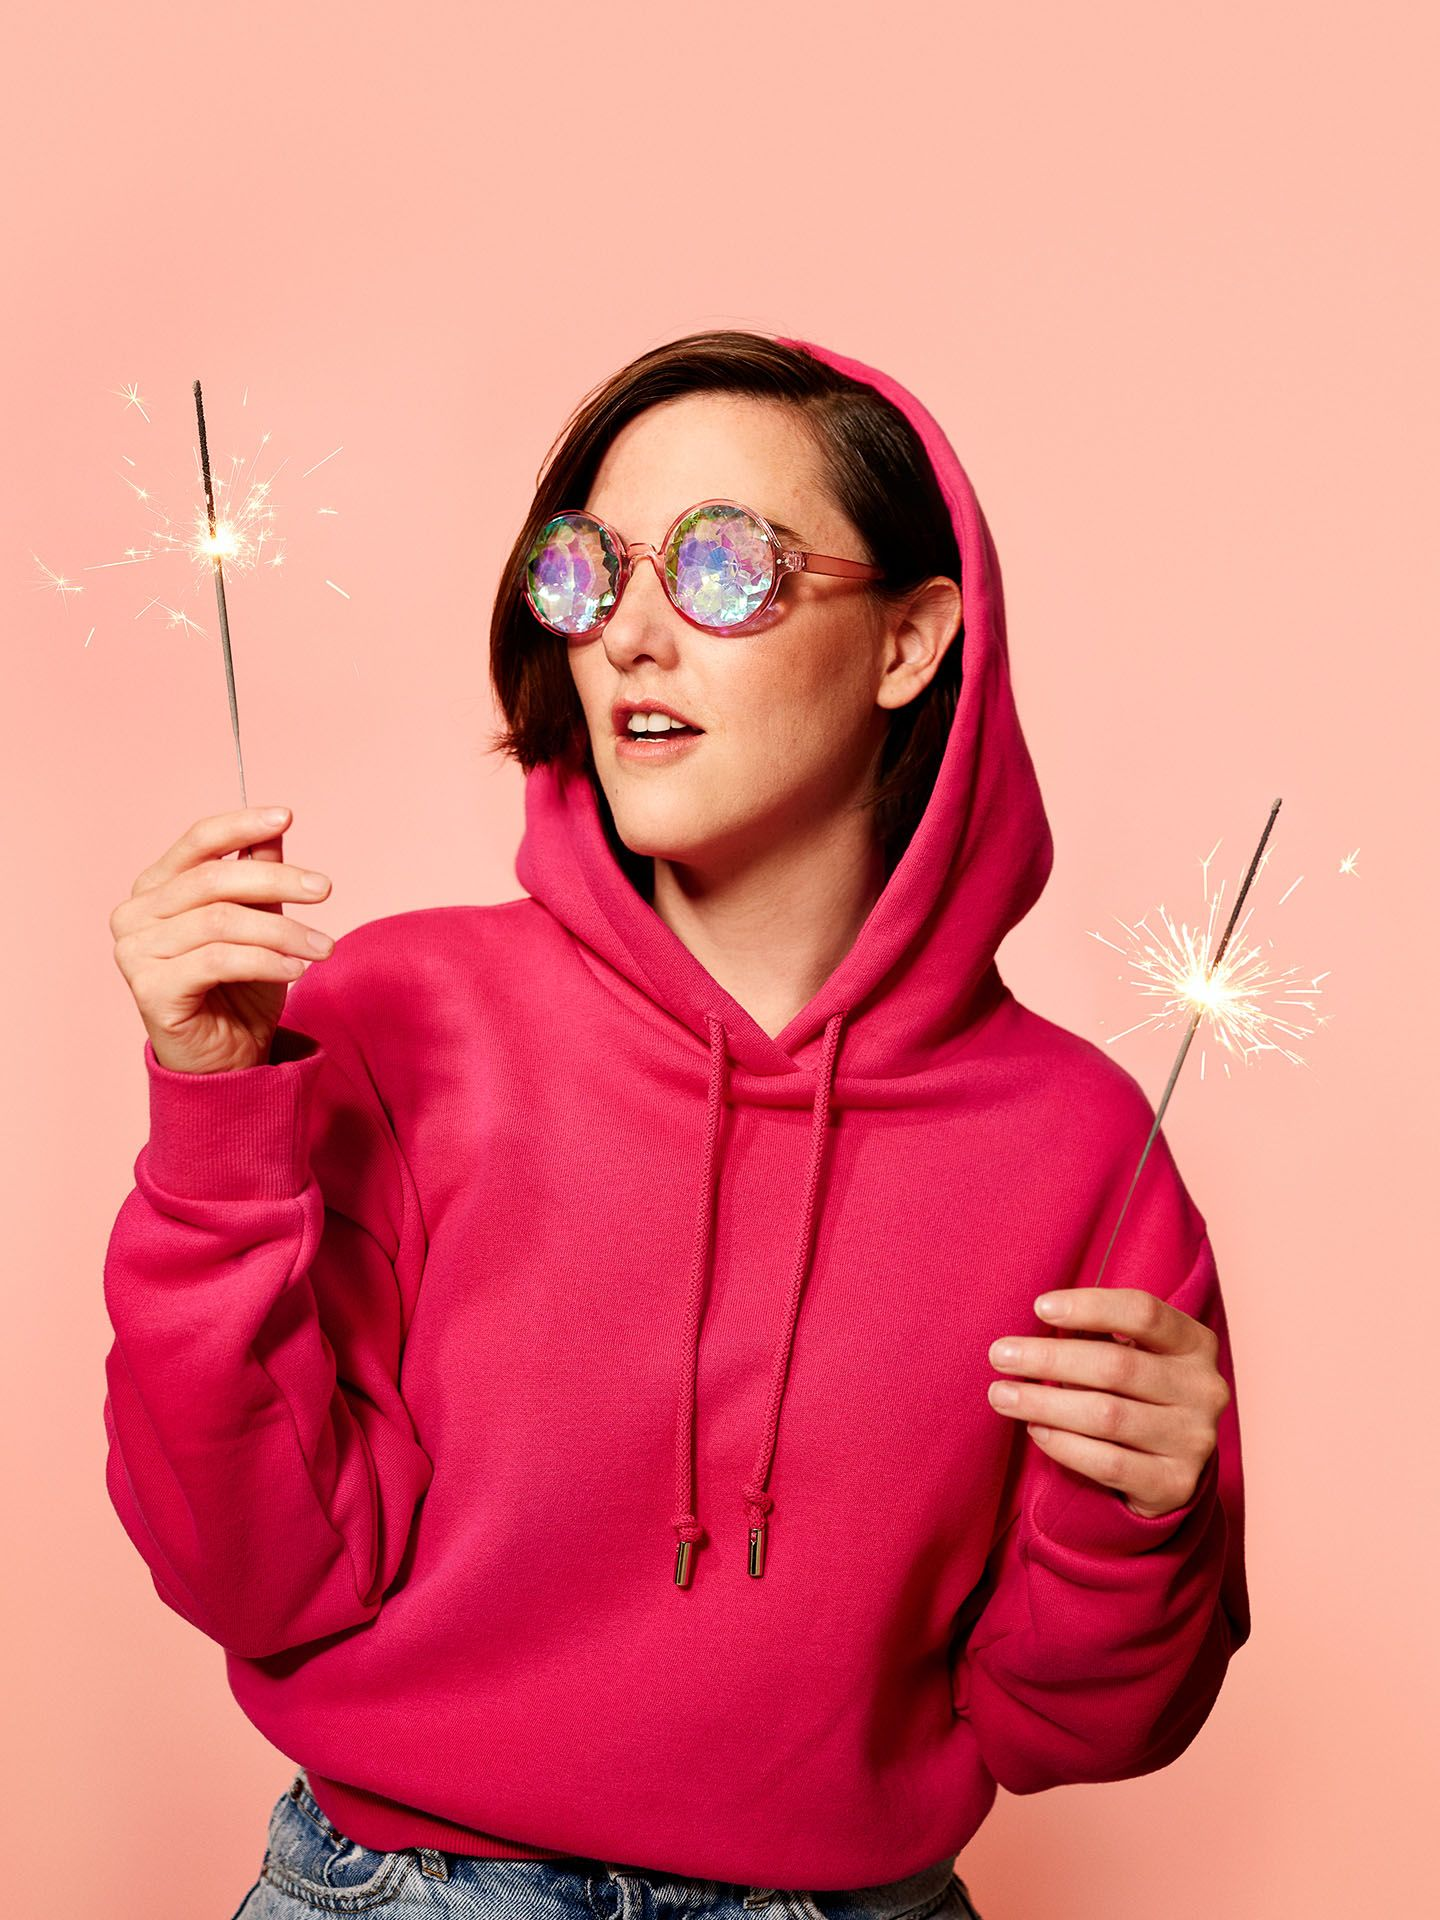 portrait of Florence Longpre wearing bright pink hoodie holding candle sticks on light pink background by Jocelyn Michel for Voir